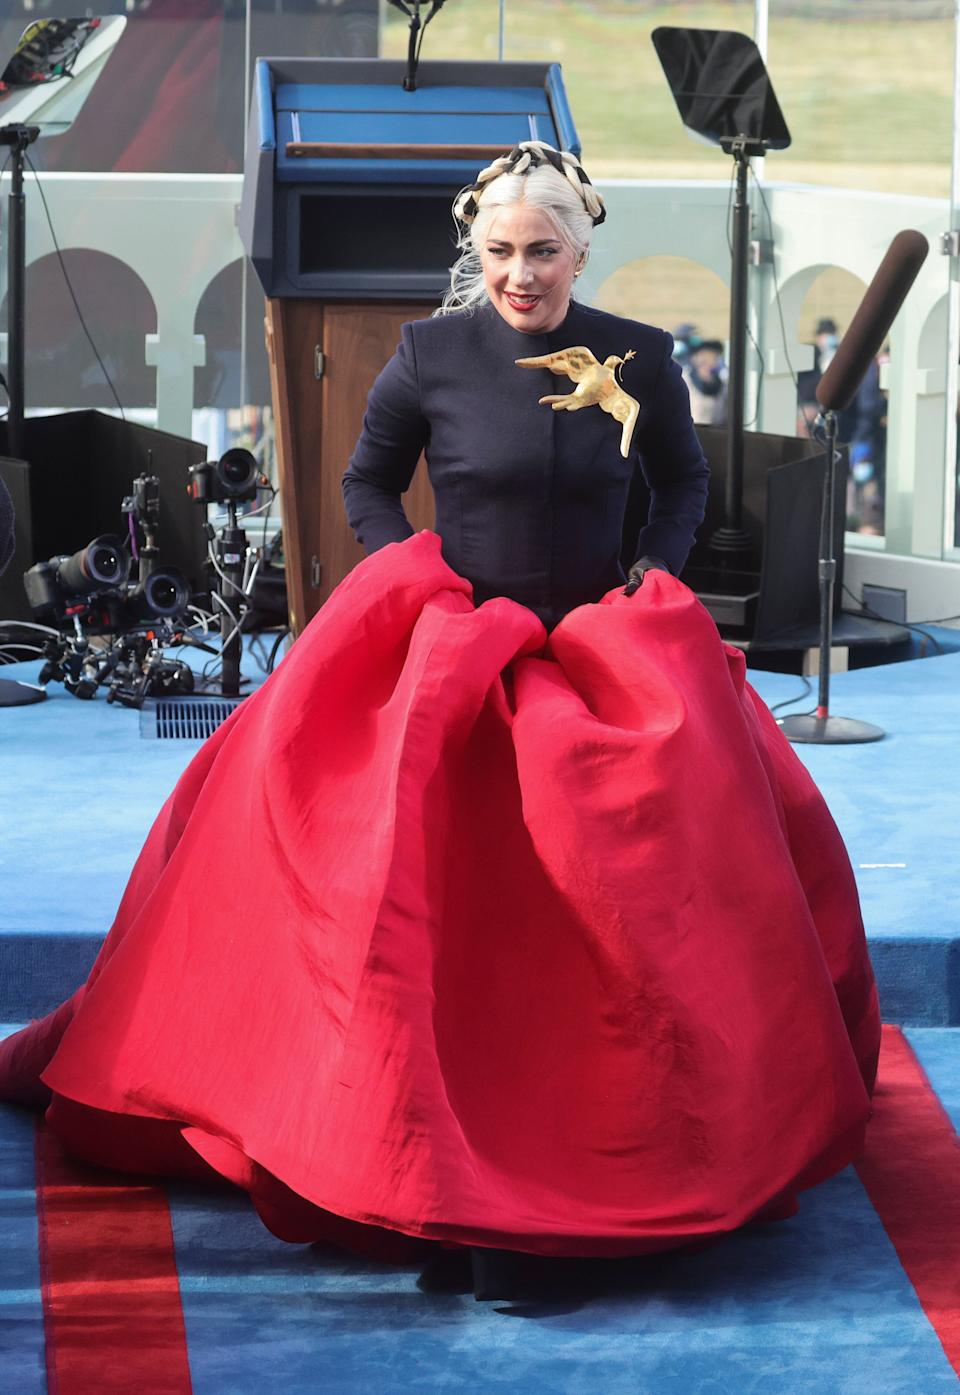 Lady Gaga picks up her skirt after singing the national anthem during the inauguration. (Photo: Pool via Getty Images)